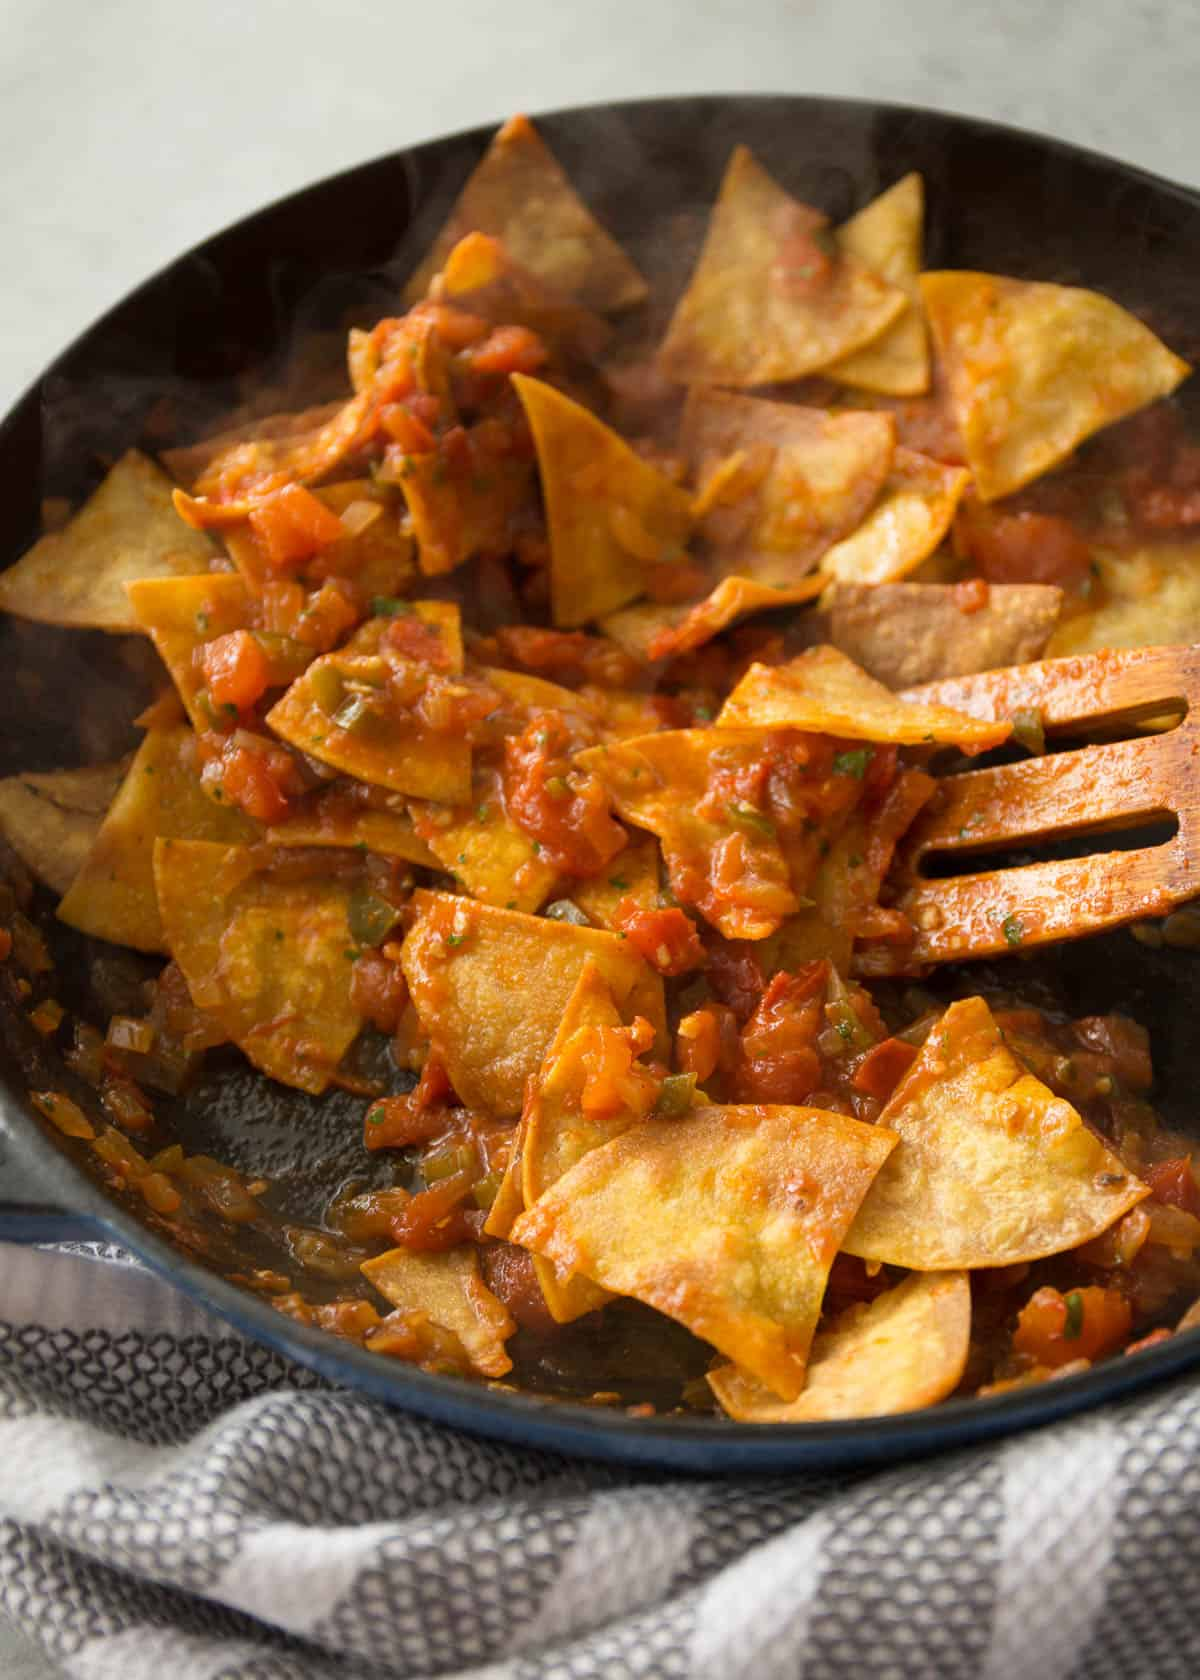 stirring baked tortilla chips into tomatoes in a cast iron skillet